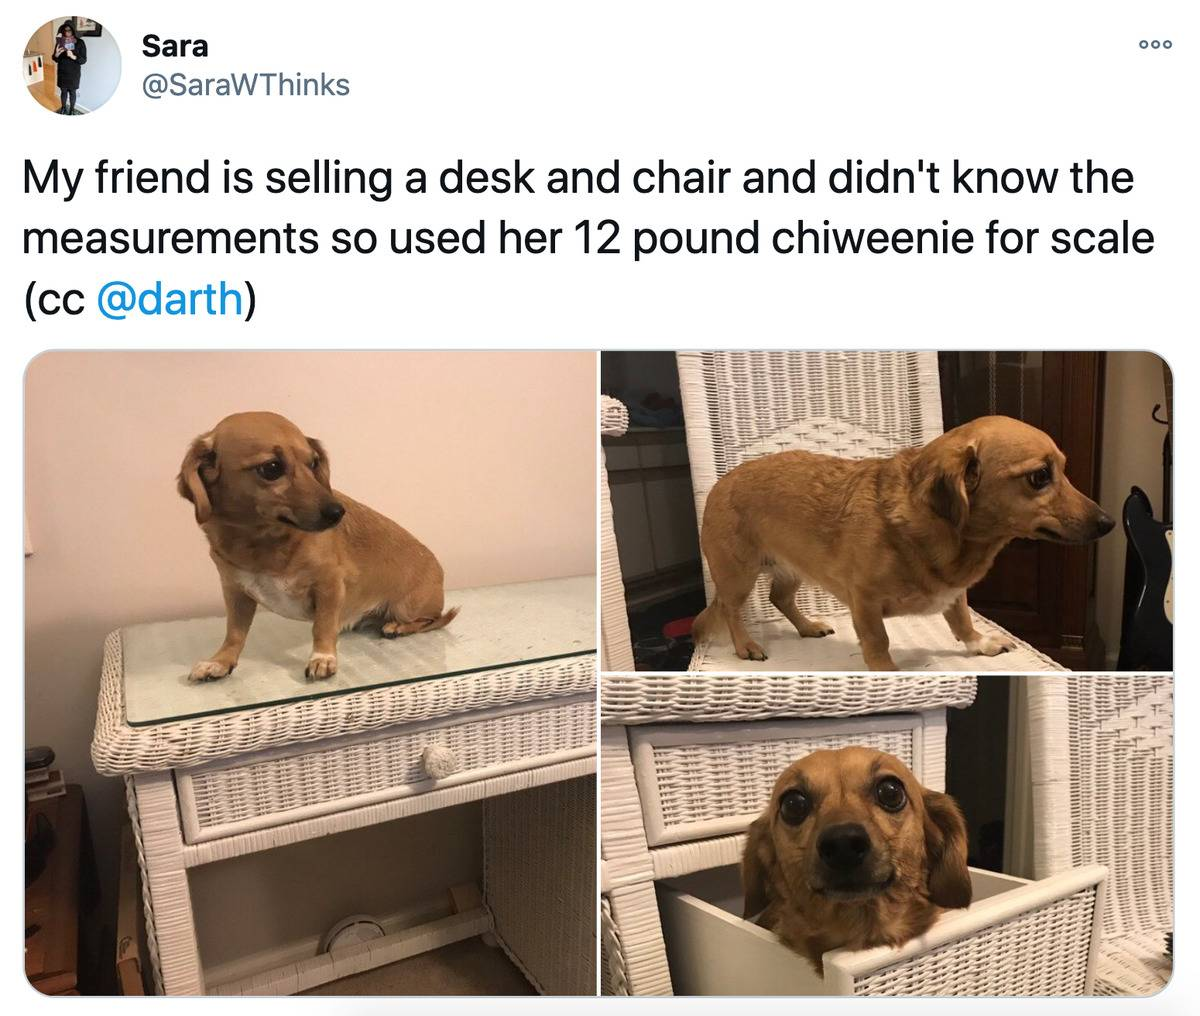 Tweet: My friend is selling a desk and chair and didn't know the measurements so used her 12 pound chiweenie for scale